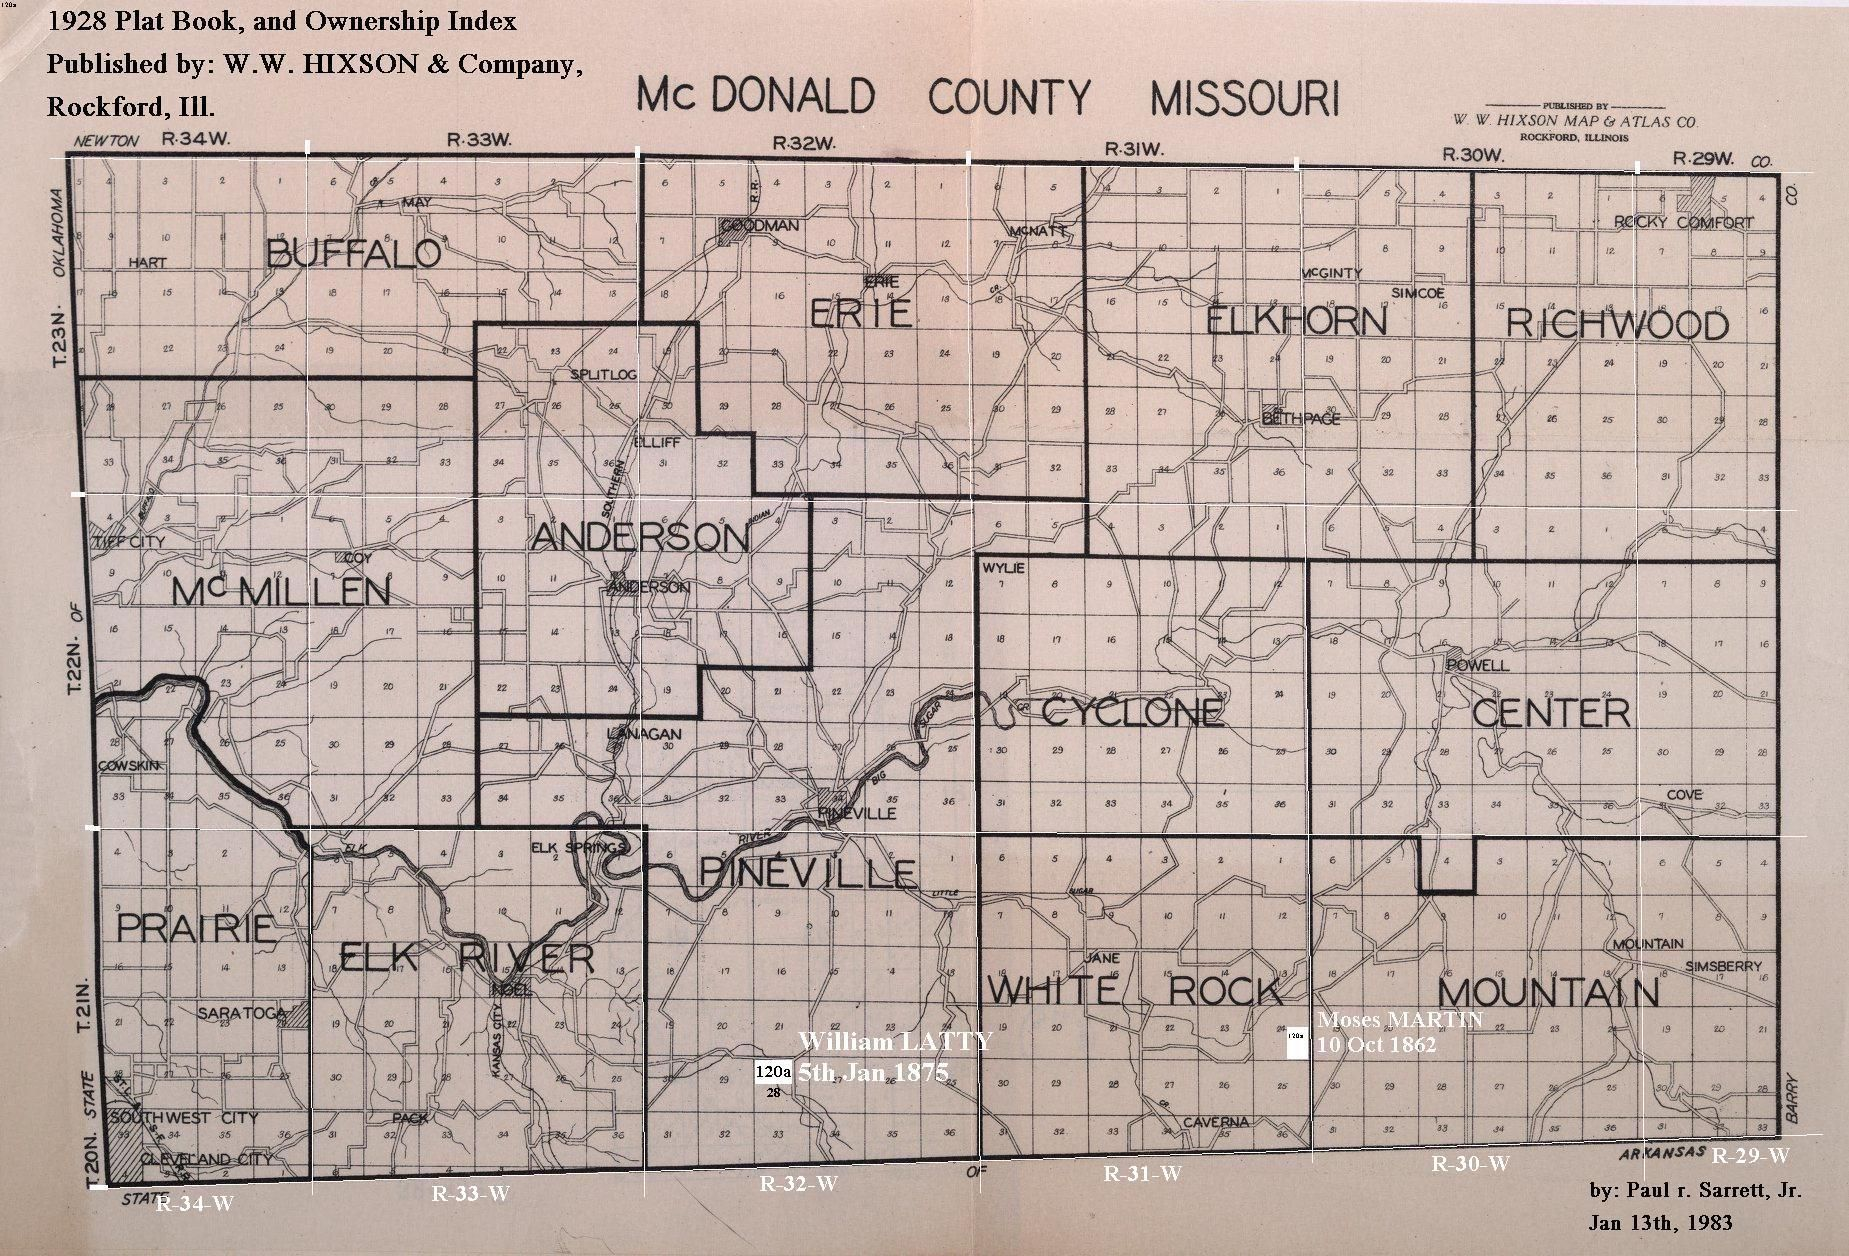 1884 mcdonald county missouri map - Google Search | DIY - Projects ...